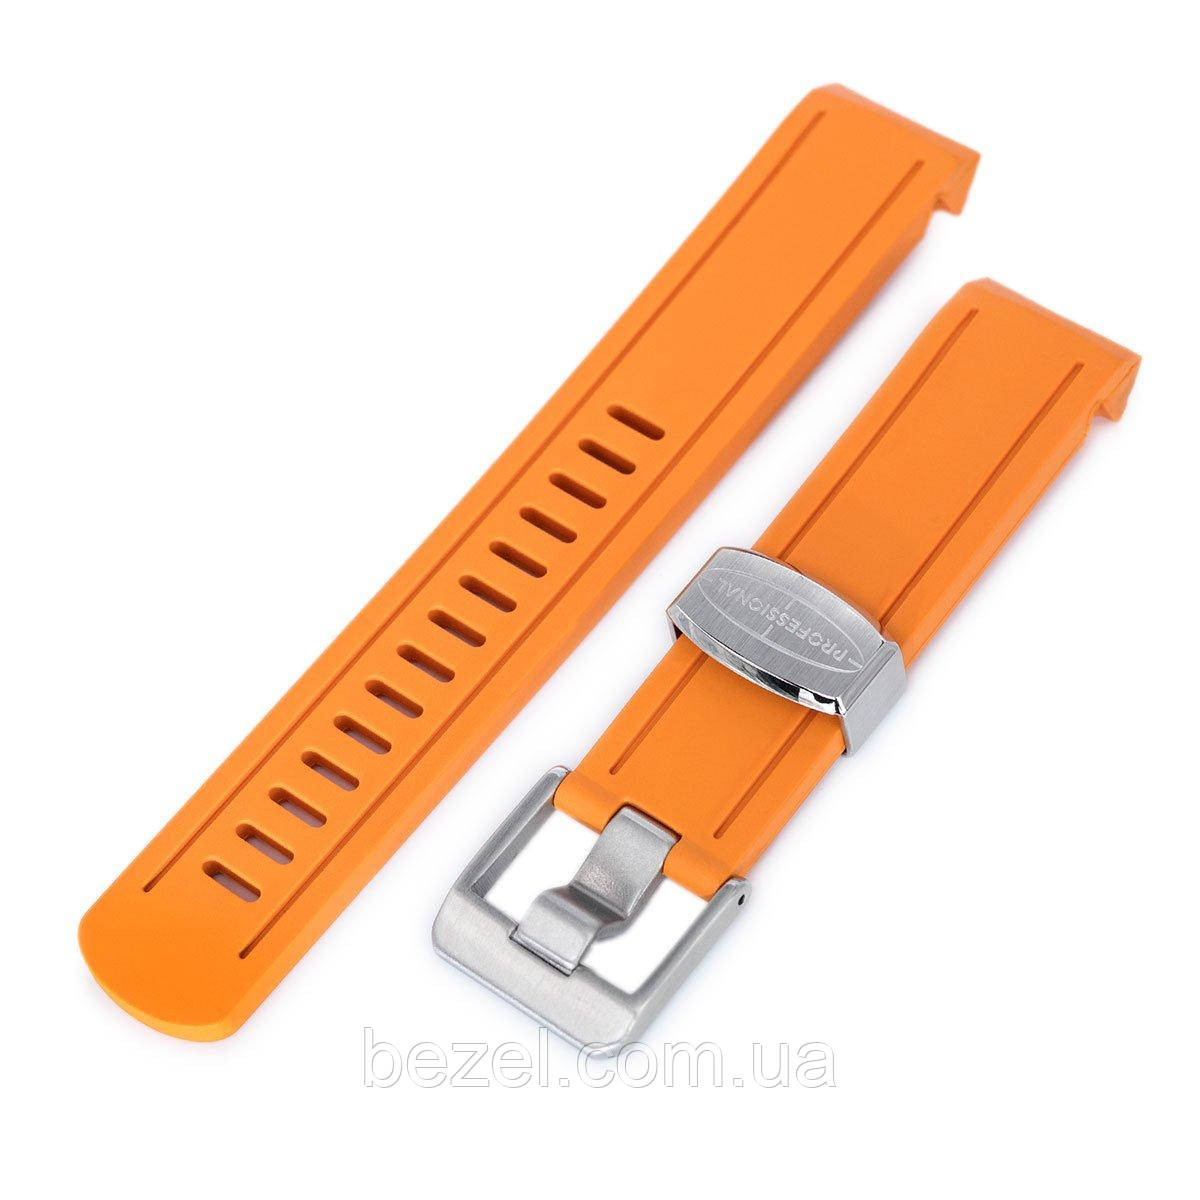 20mm Crafter Blue - Orange Rubber Curved Lug Watch Band for Seiko Sumo SBDC001